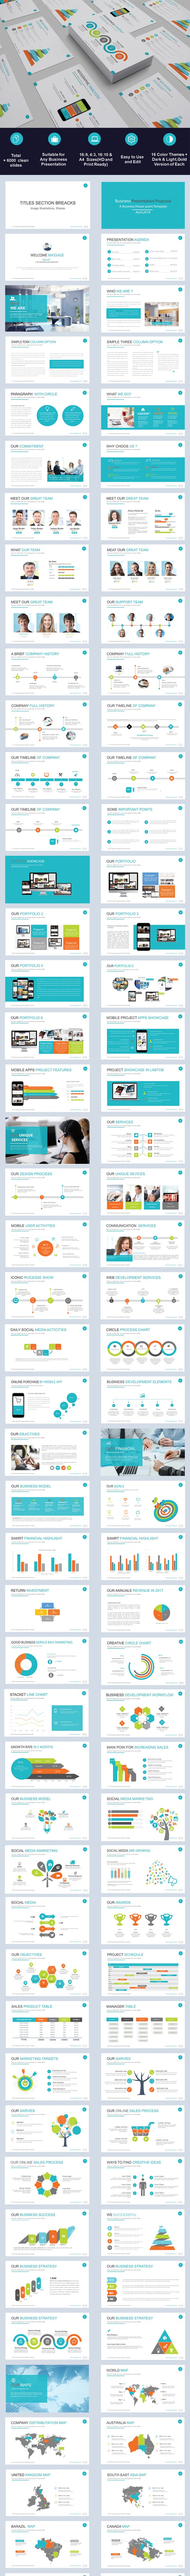 Business Proposal Powerpoint Template By Gharakdesign Graphicriver